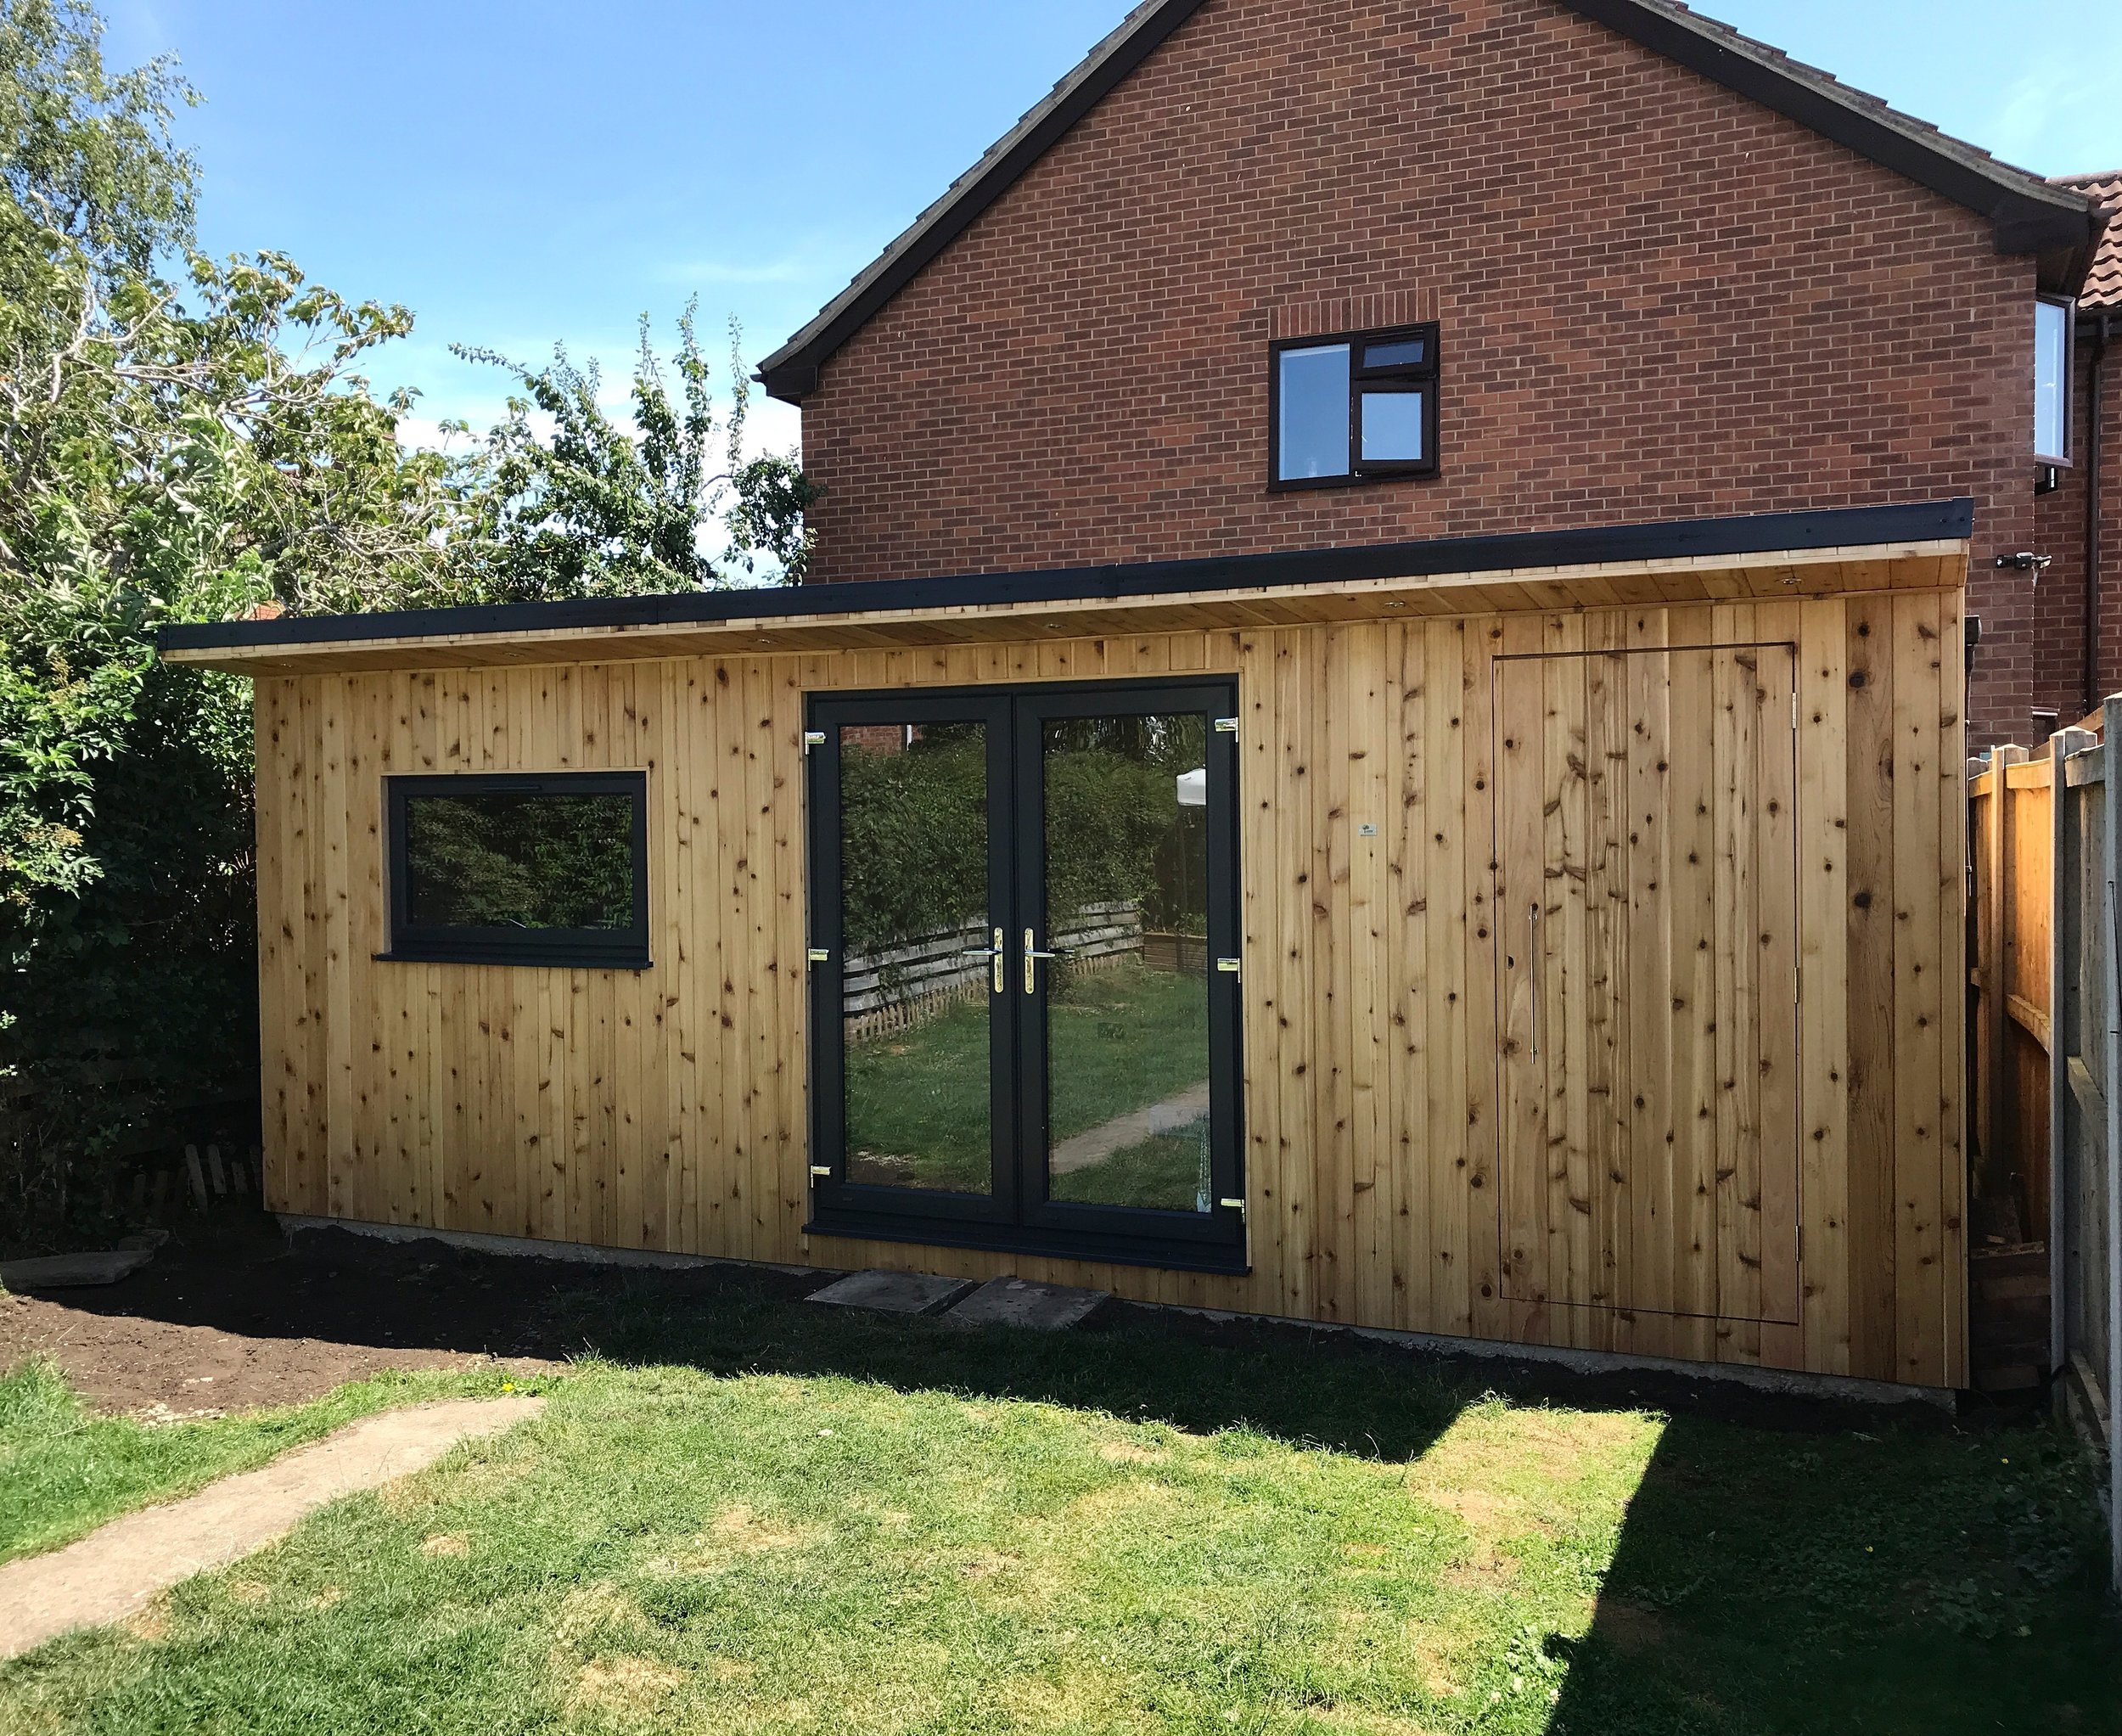 """Churchdown Garden Office - """"I literally could not recommend Rich more! I had been looking for a while at home offices as working out of a bedroom was no longer ideal. I saw a friends home office that Rich had built and asked for a quote. What we wanted was a lot bigger than anything else he had done and included a hidden shed building too.... Safe to say he absolutely smashed it out of the park. We now have an incredible home office with gorgeous red cedar cladding and a fantastic space for work (and my husband loves his new man cave shed!) Rich is friendly, professional, extremely hard working and provides gorgeous custom and bespoke work at a much better price than so many i had contacted before.From the initial quote and design images to the final product, Rich kept me updated every step of the way and it was awesome to see the progression of the build.Thank you so much again and we will be recommending you to anyone who wants a home office or outbuilding!""""Mrs Davis - Gloucestershire"""